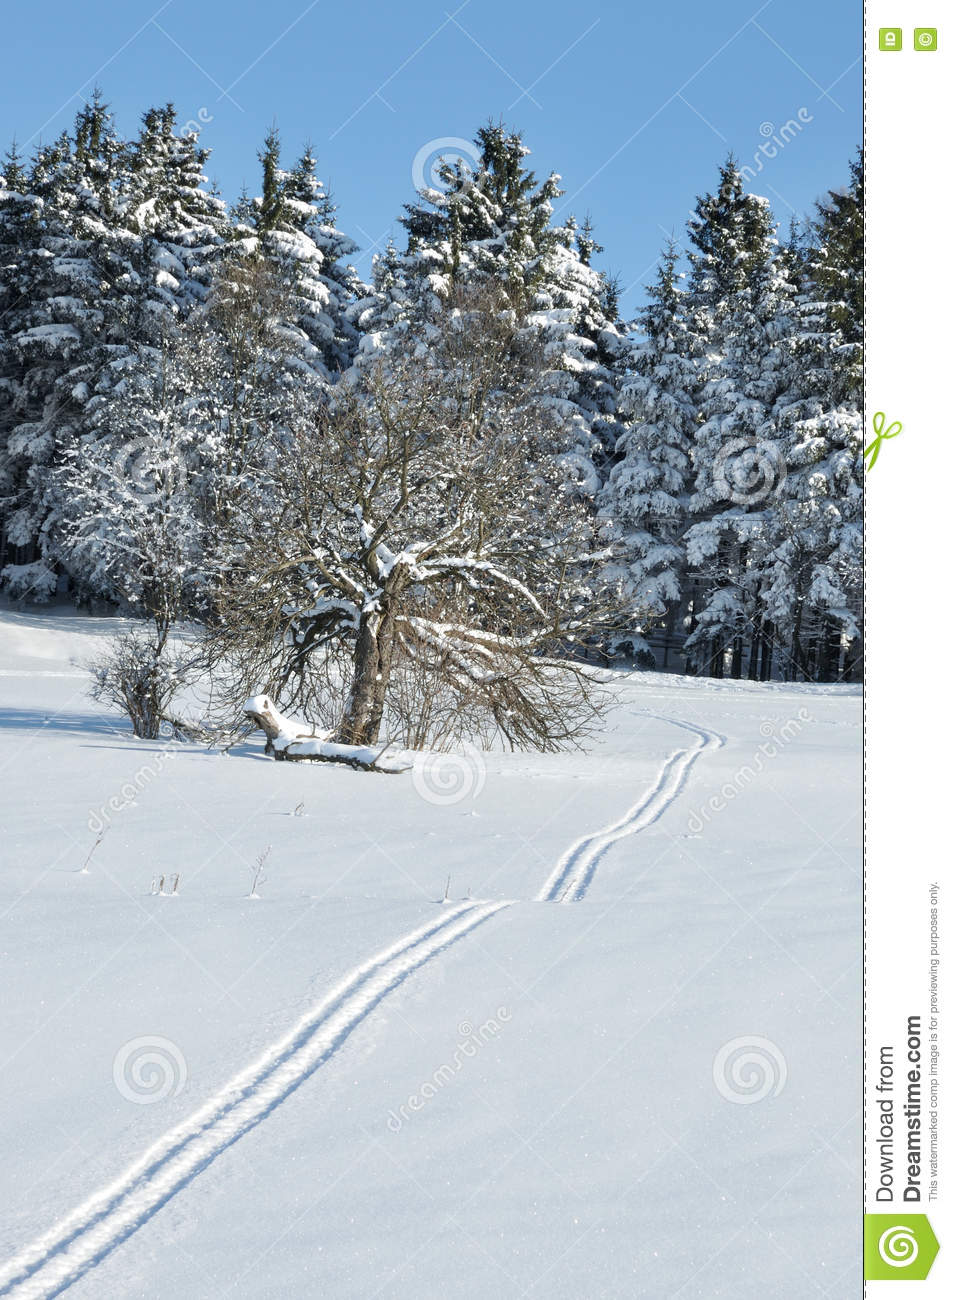 Skying Cross Country